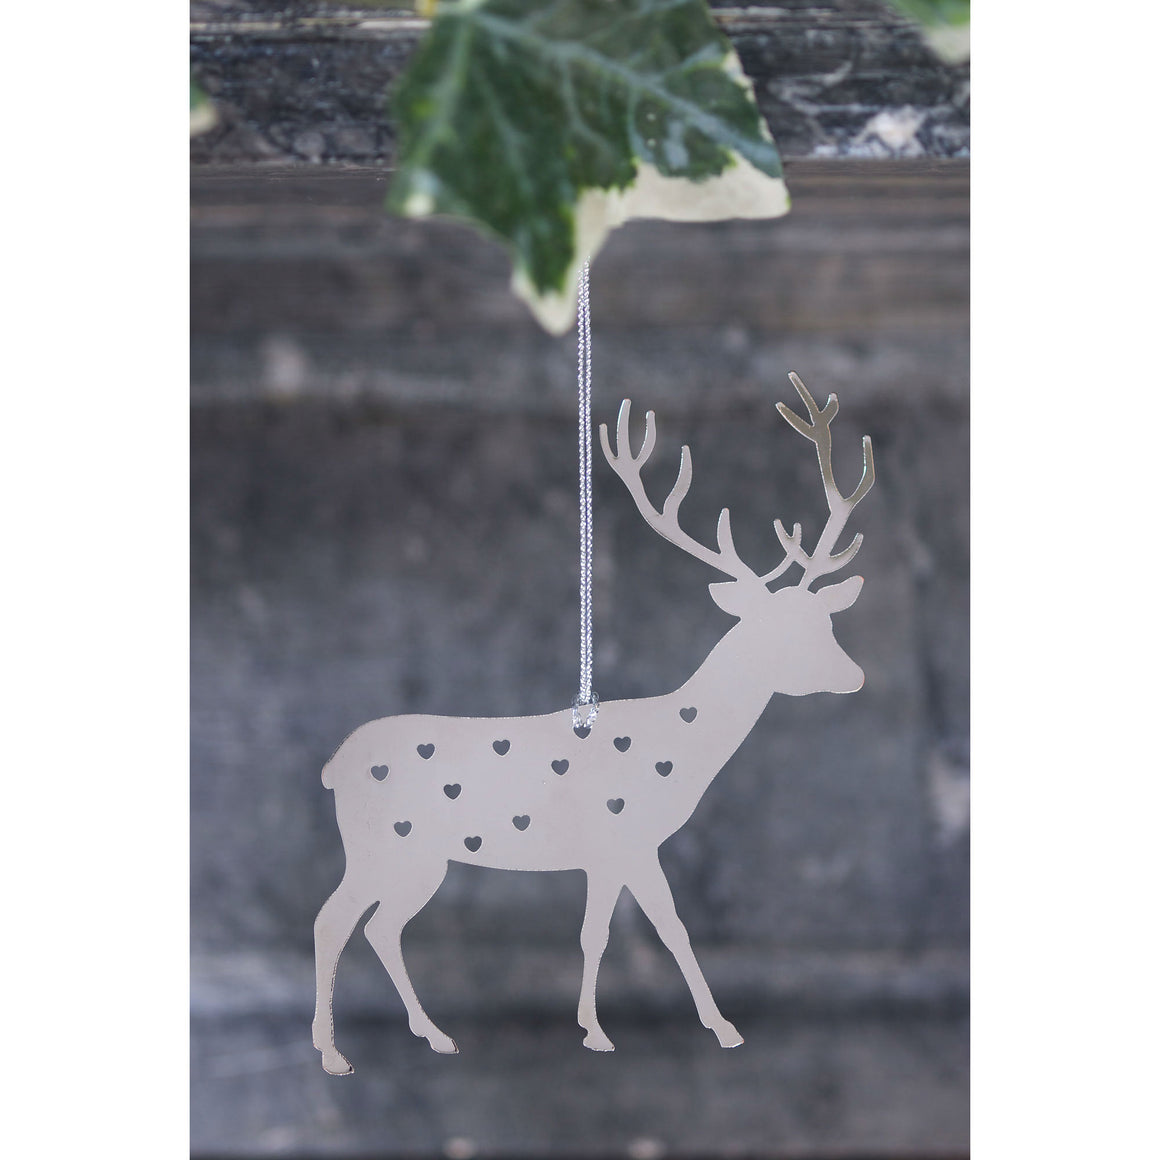 Oh Deer Christmas Decoration